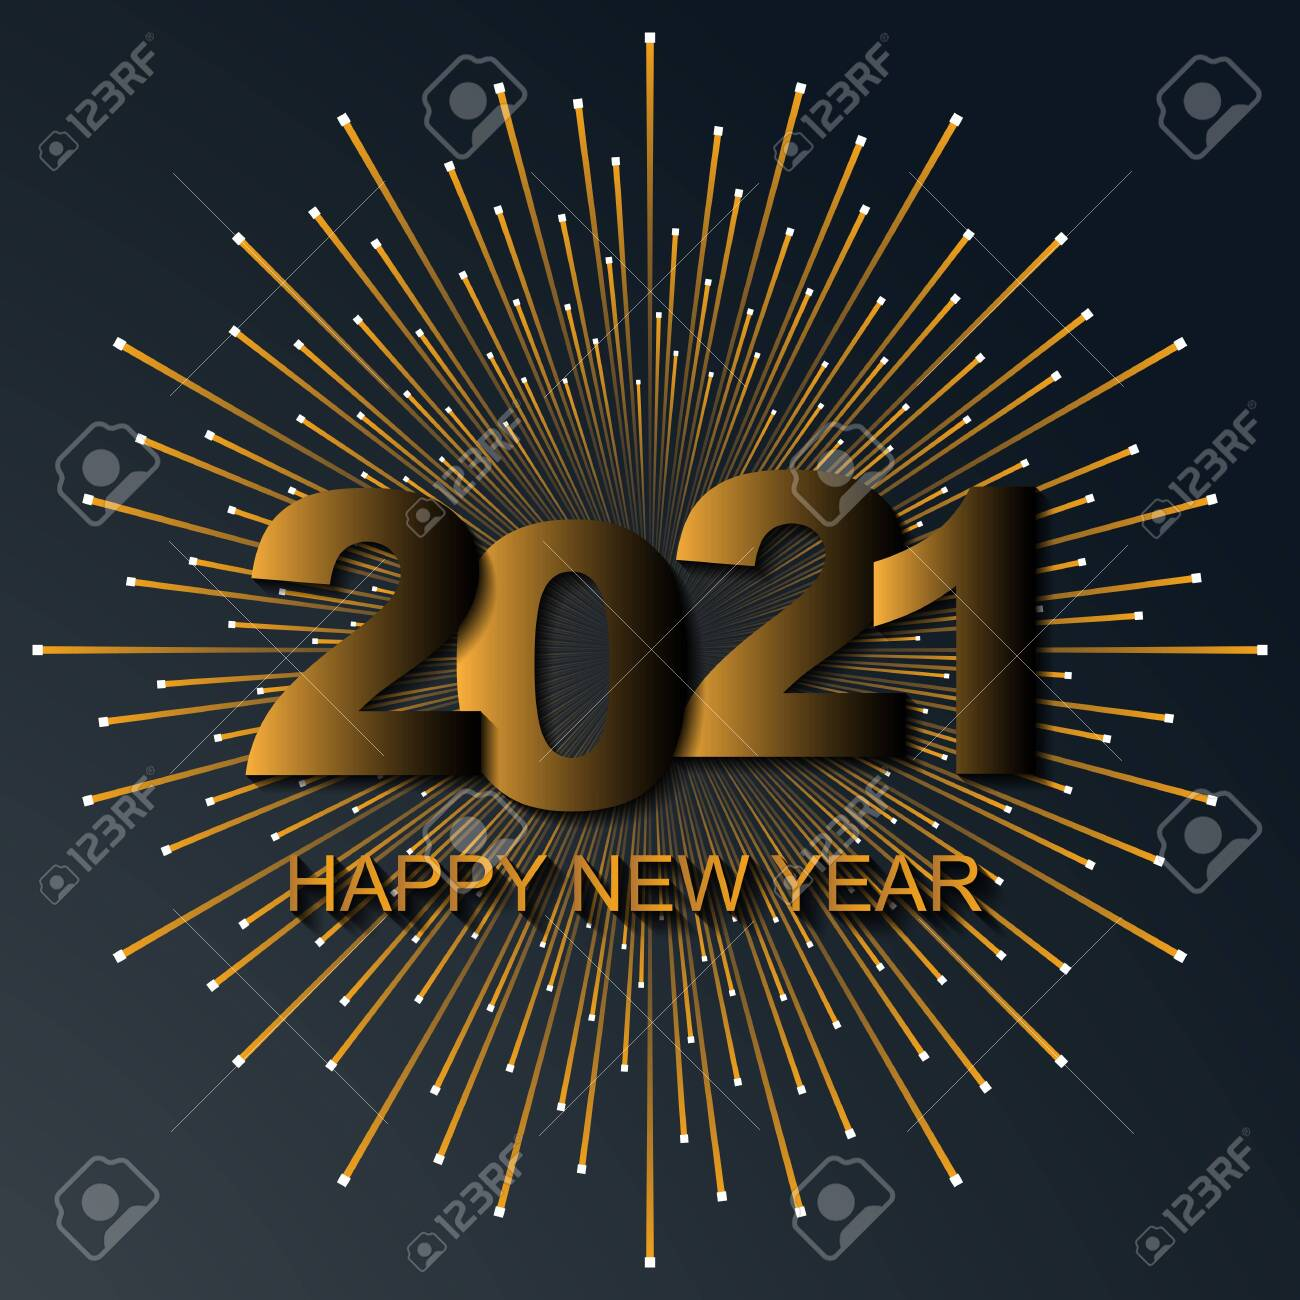 Black New Year Background Happy New Year 2021 Logo Text Design Royalty Free Cliparts Vectors And Stock Illustration Image 144387929